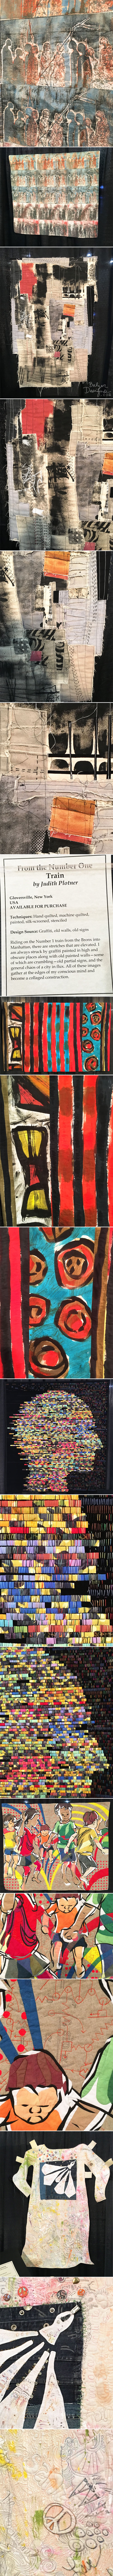 From the Balzer Designs Blog: Quilt Festival: Part Three #quilting